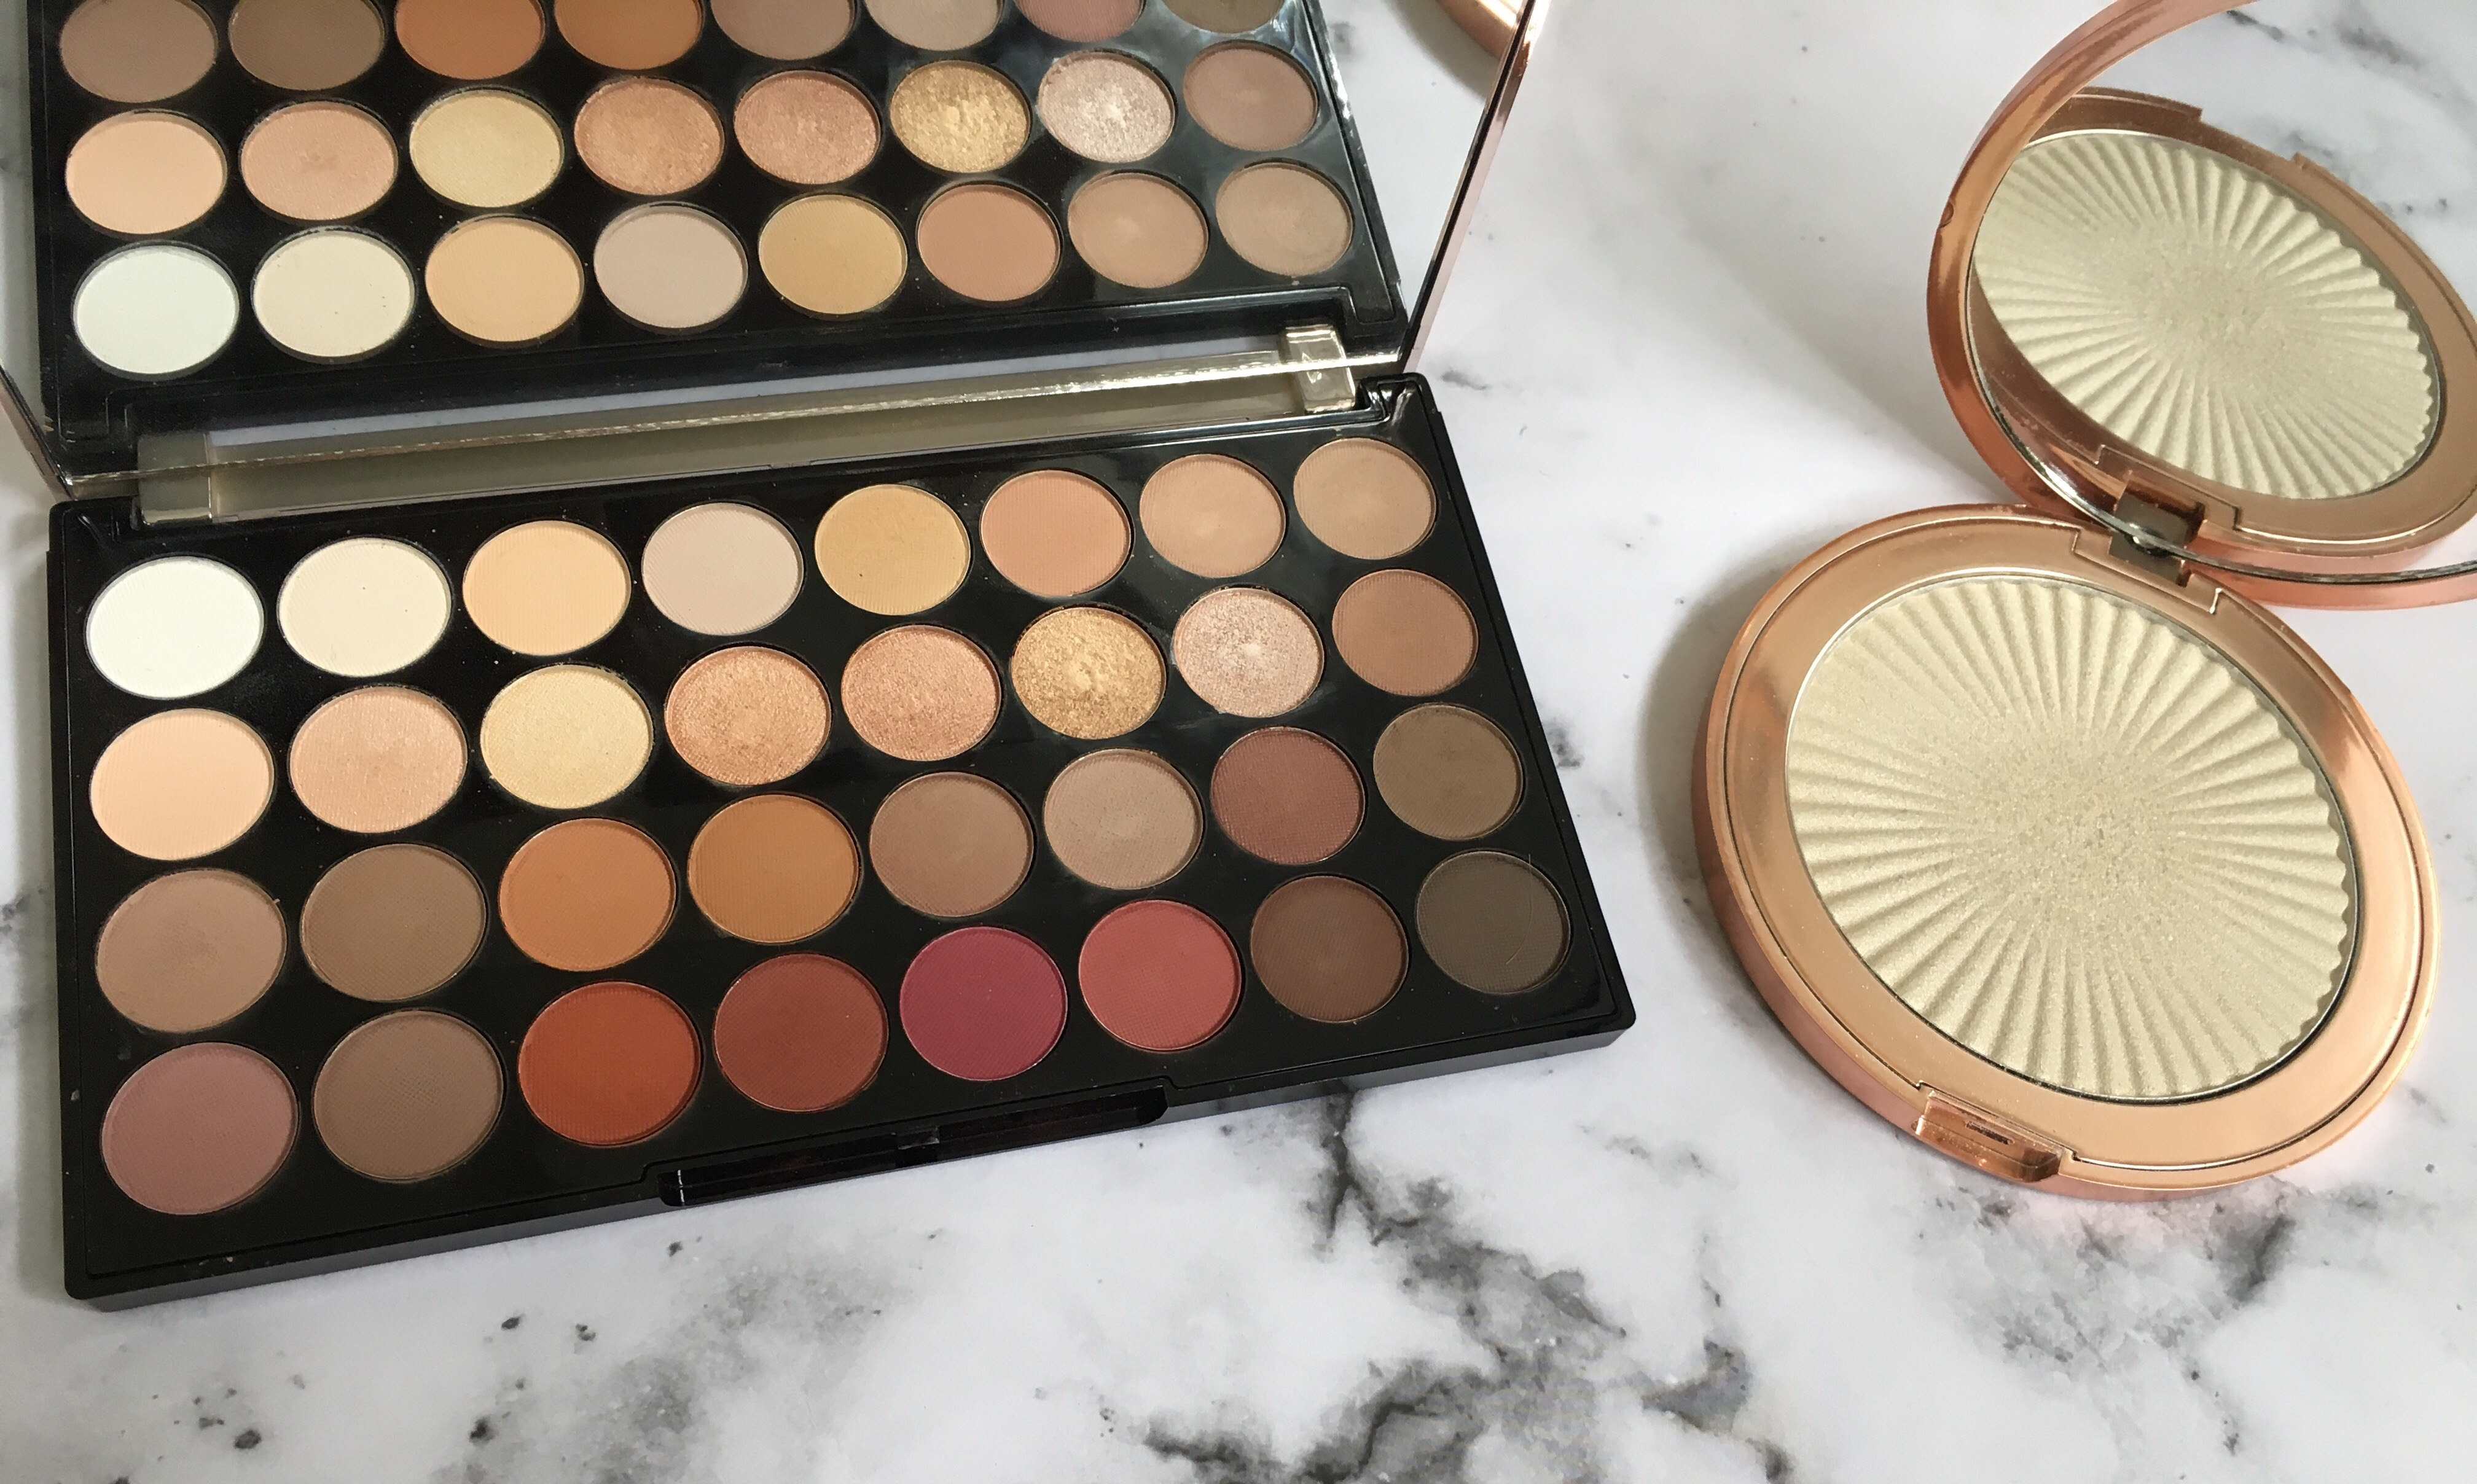 Makeup Revolution Flawless 3 Eyeshadow Palette and Makeup Revolution Skin Kiss in Ice Kiss